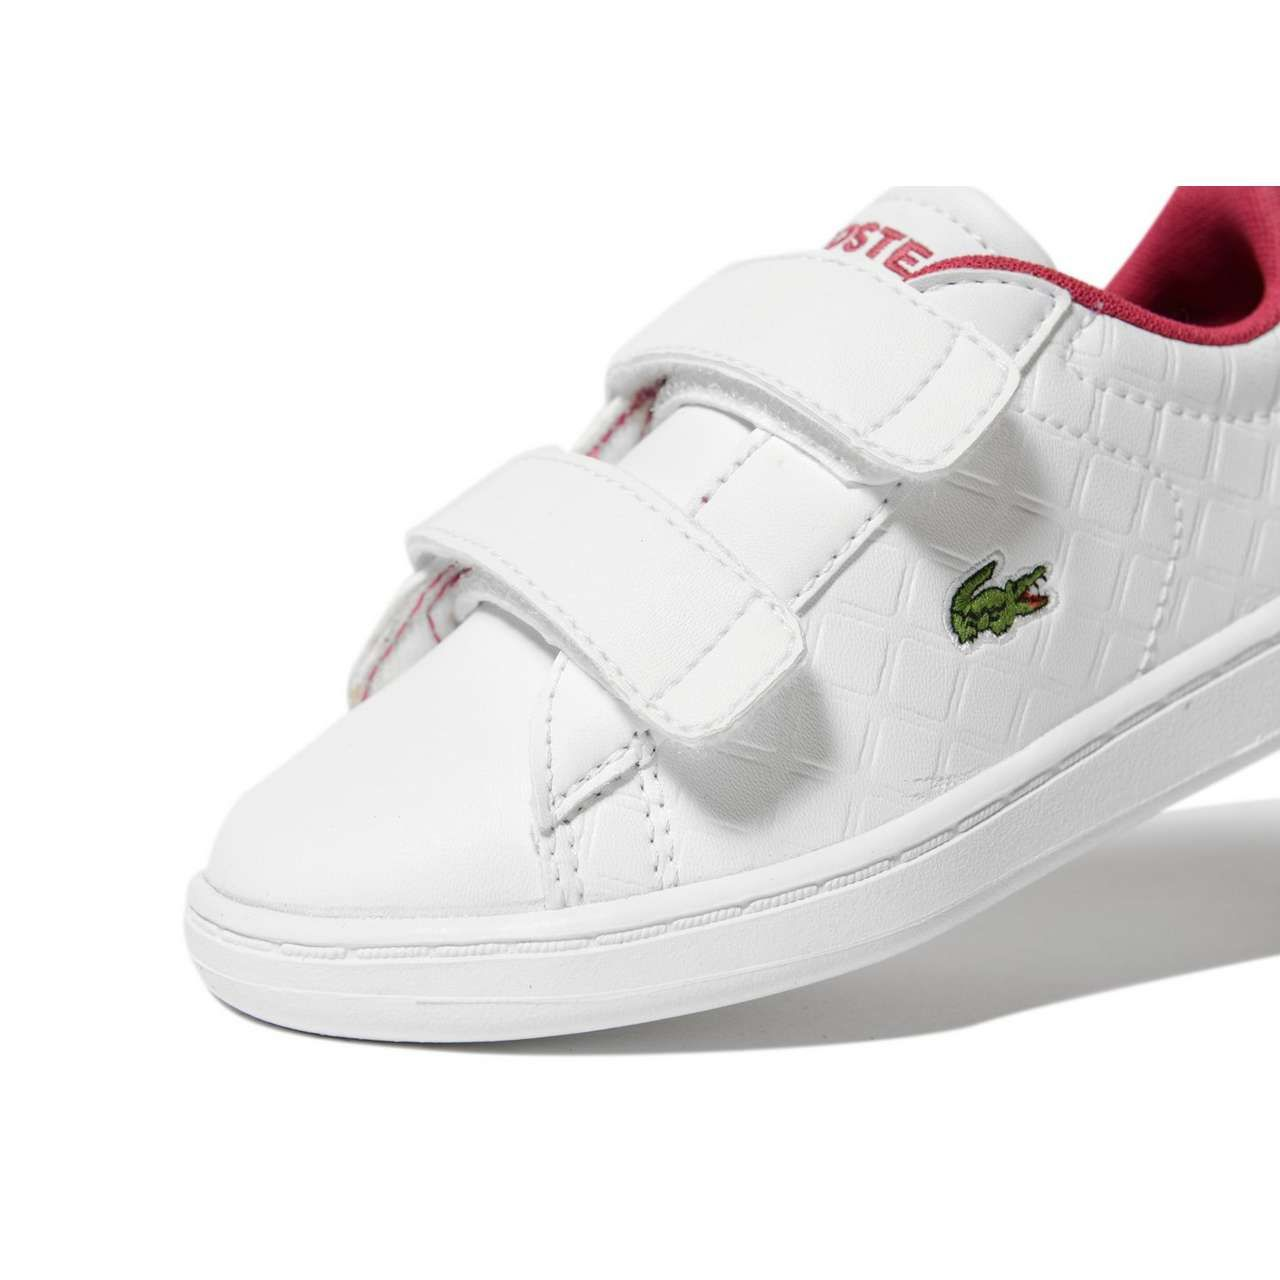 91af51e16f3 Lacoste Carnaby Infant